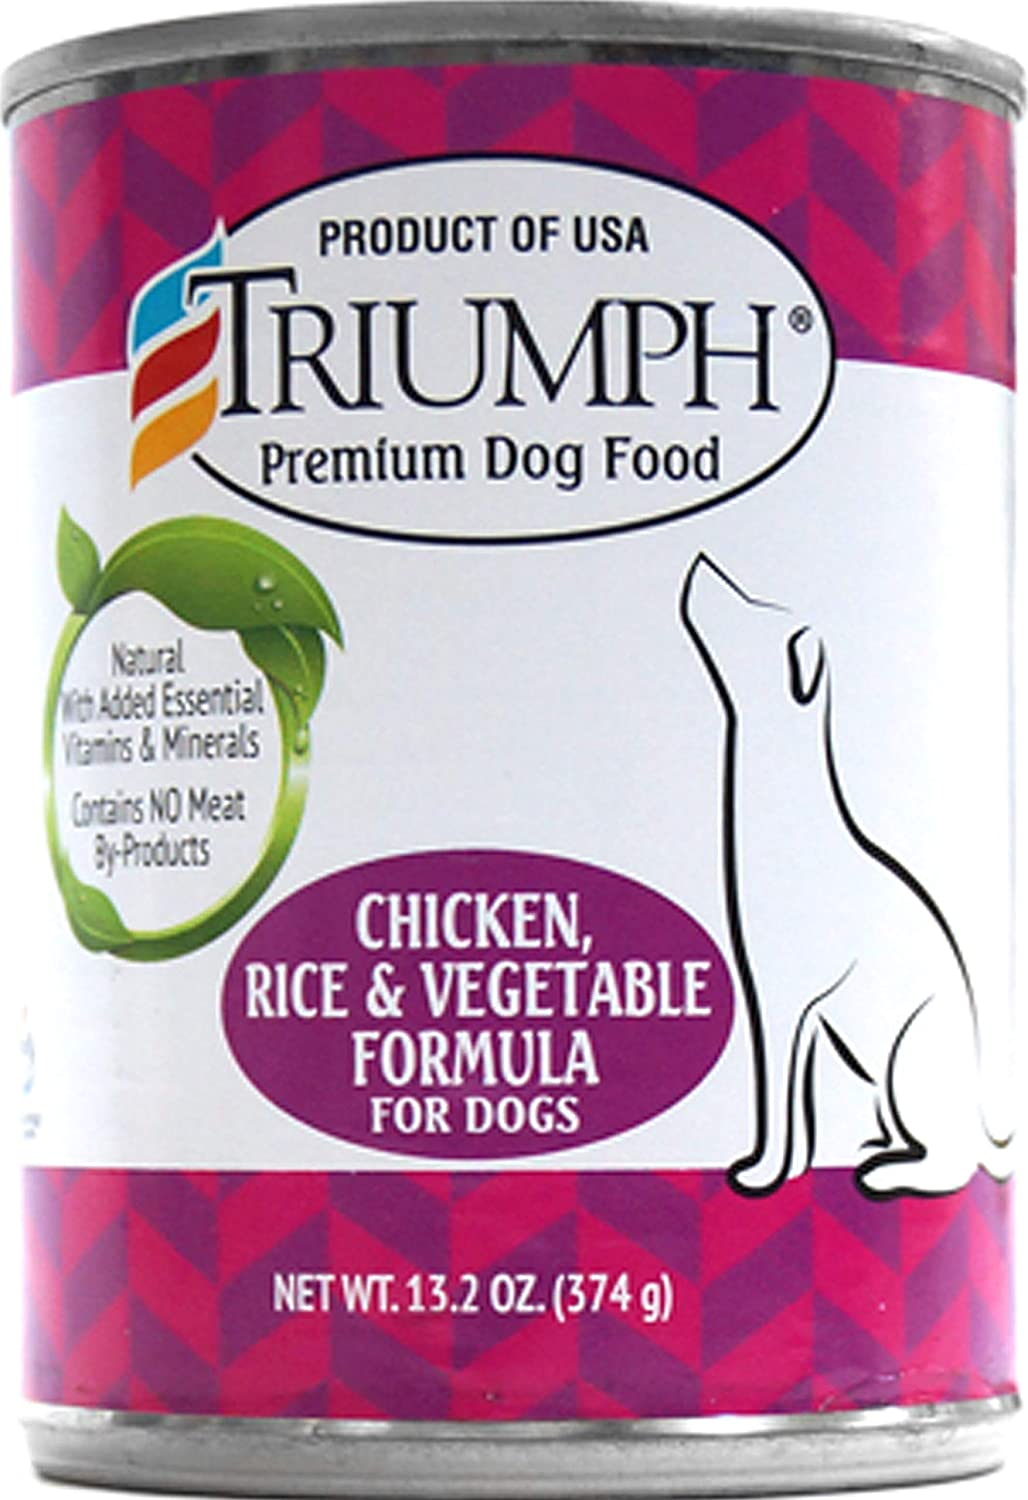 Triumph Chicken, Rice & Vegetables Dog Food - 12X13.2 Oz